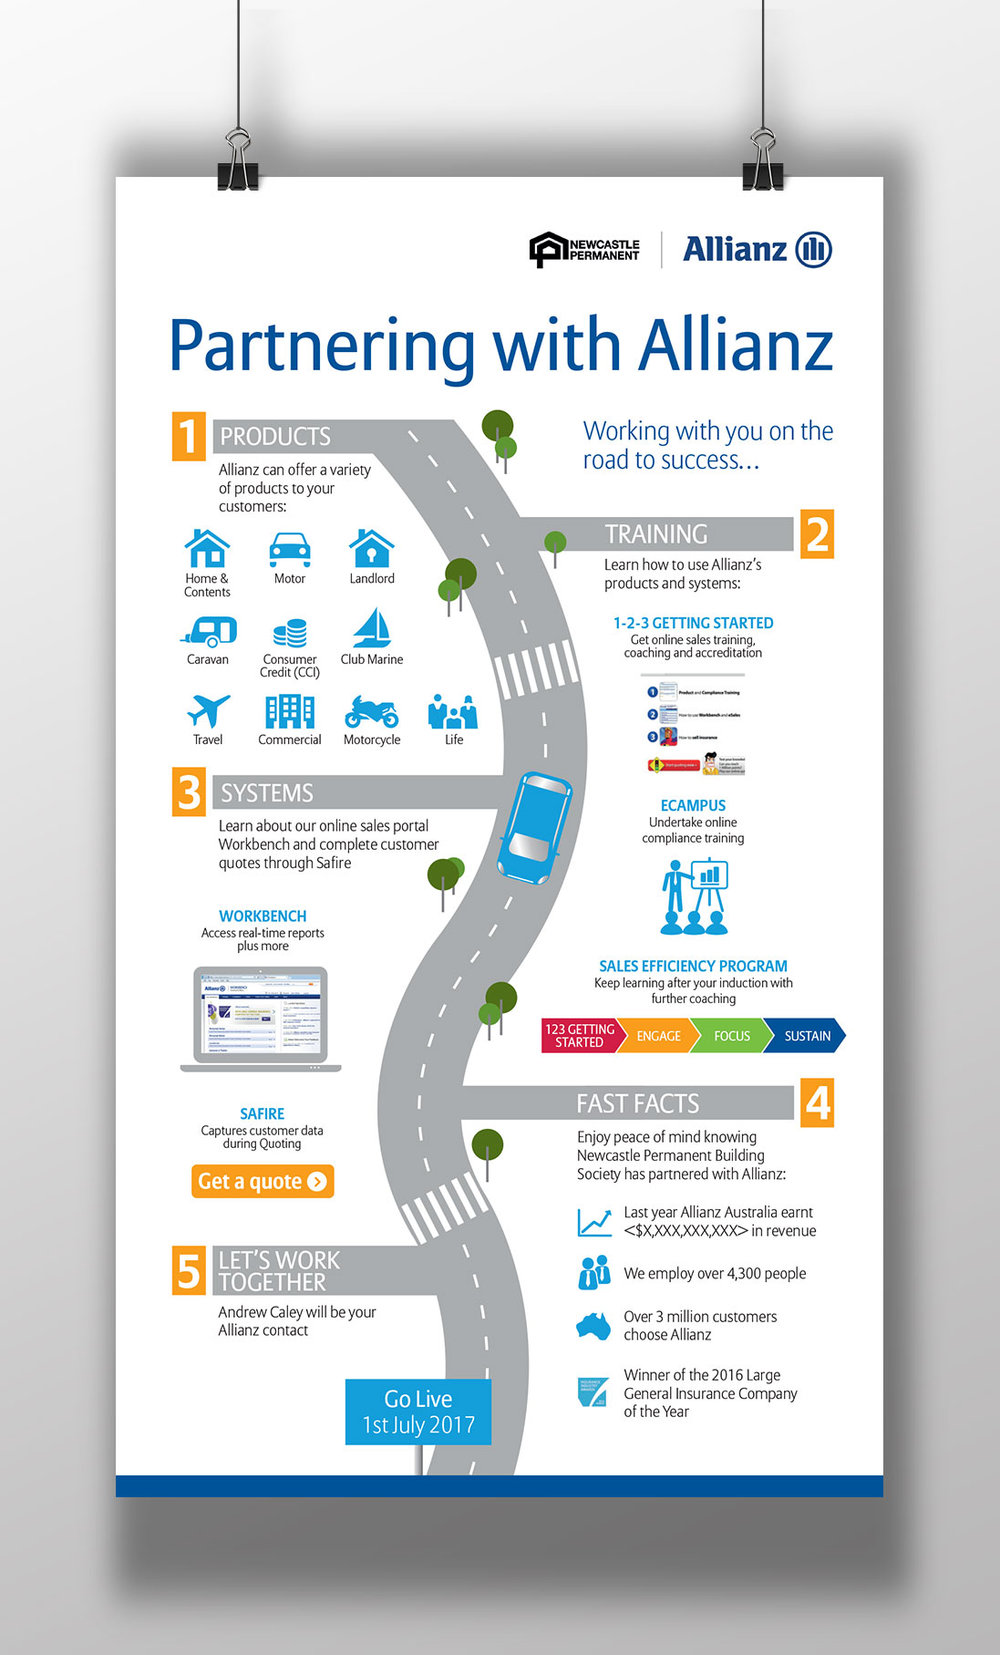 Allianz-Infographic_2017.jpg